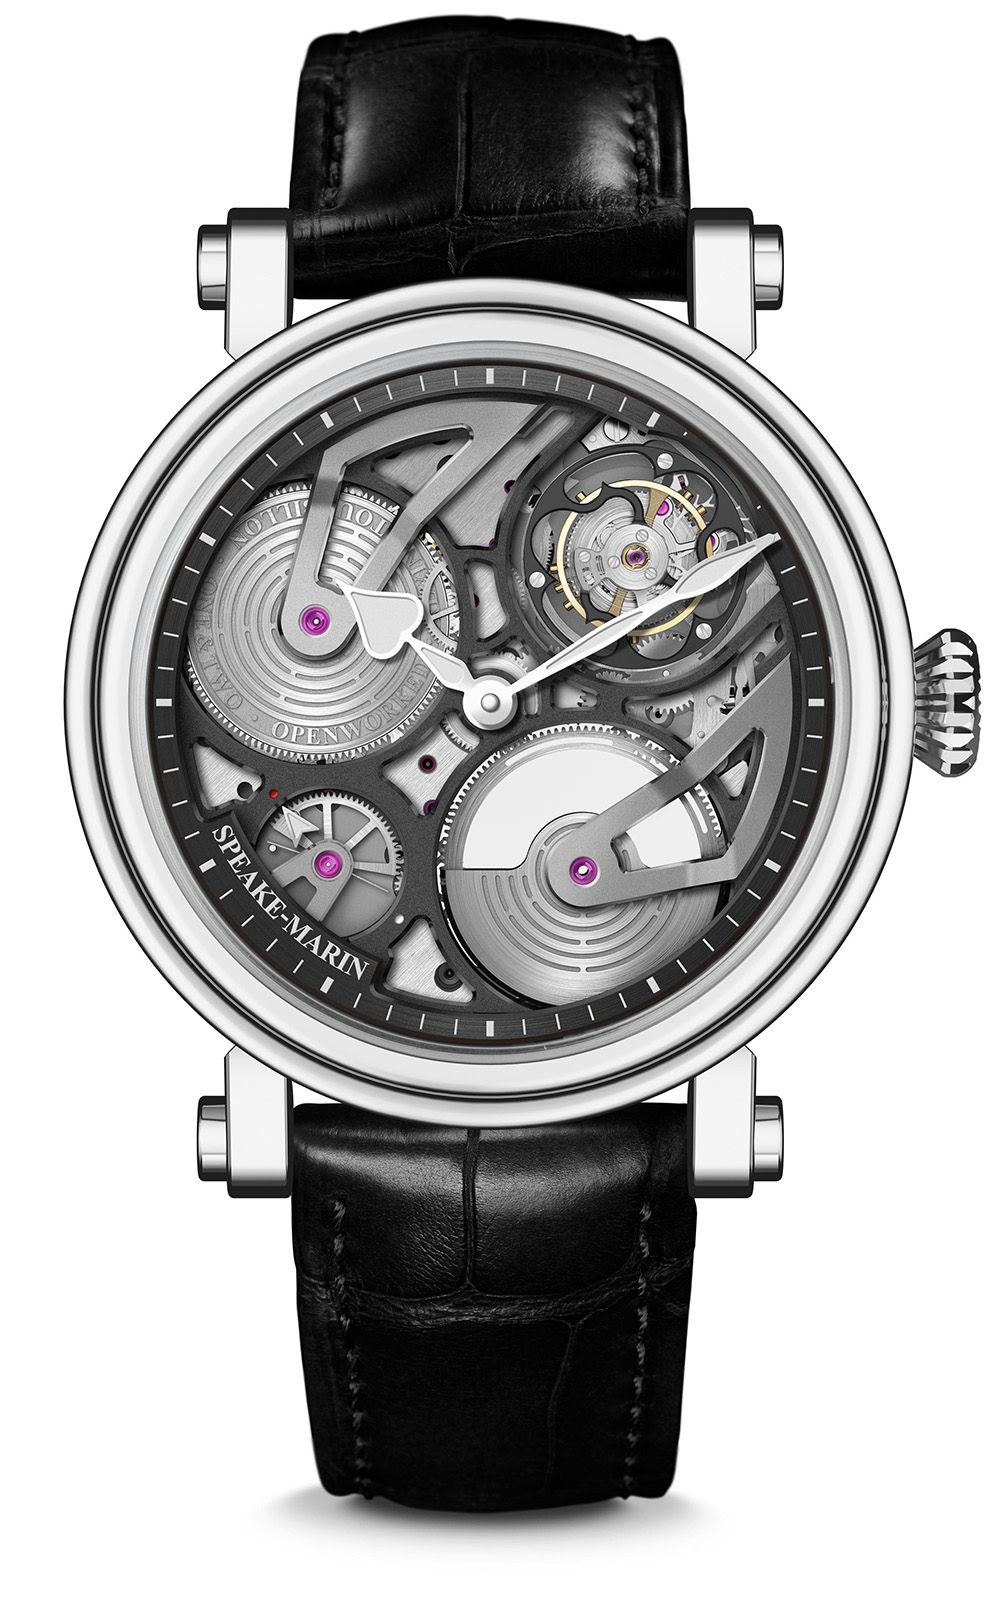 Speake-Marin One&Two Openworked Flying Tourbillon 42 mm